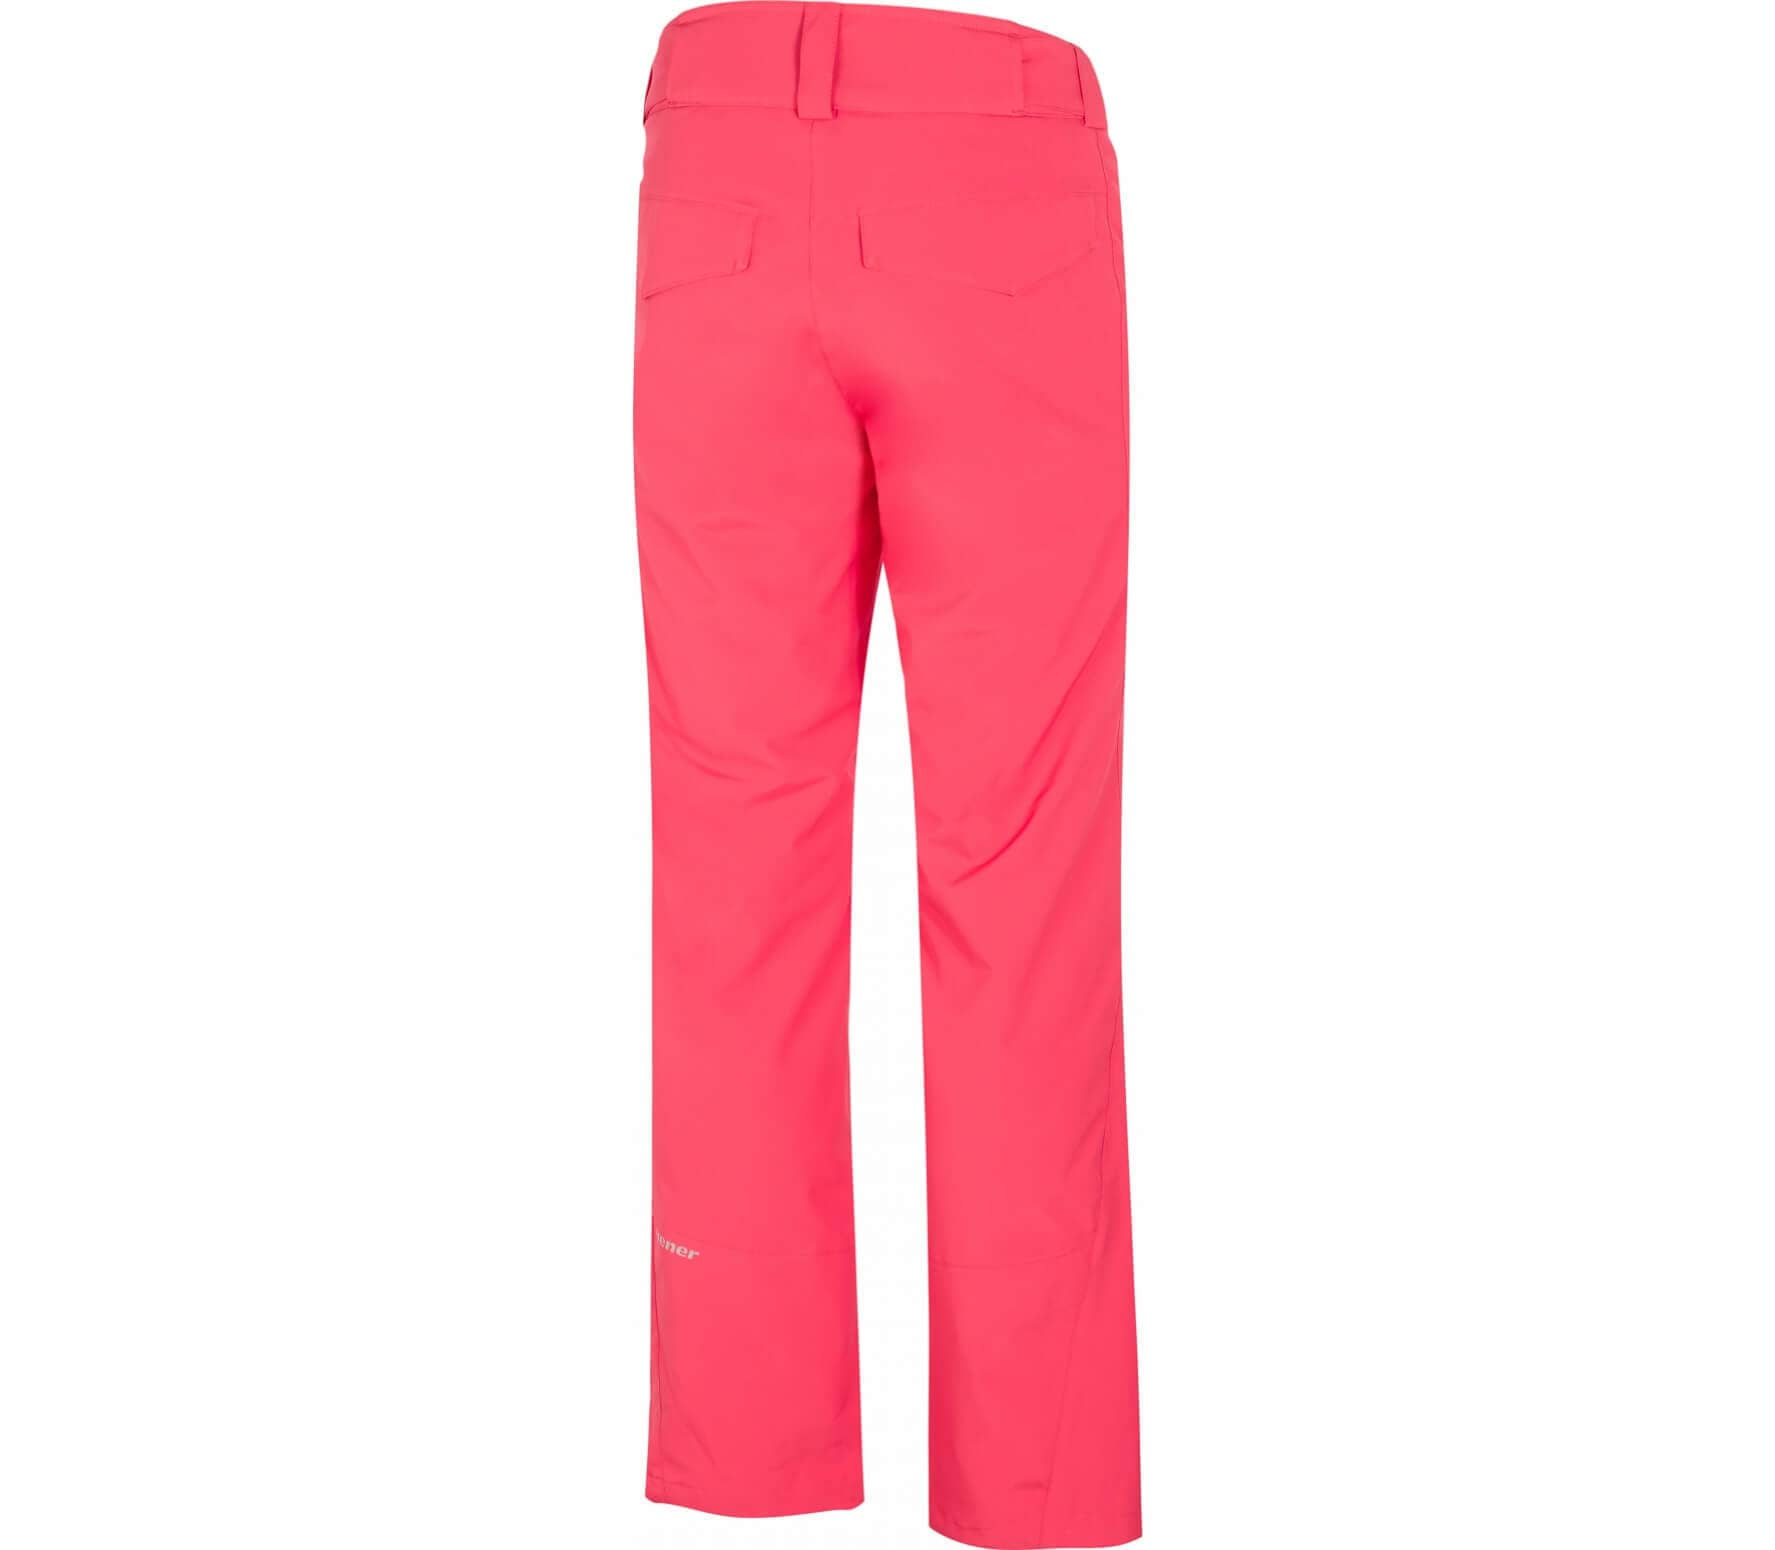 ziener teme damen skihose pink im online shop von keller sports kaufen. Black Bedroom Furniture Sets. Home Design Ideas